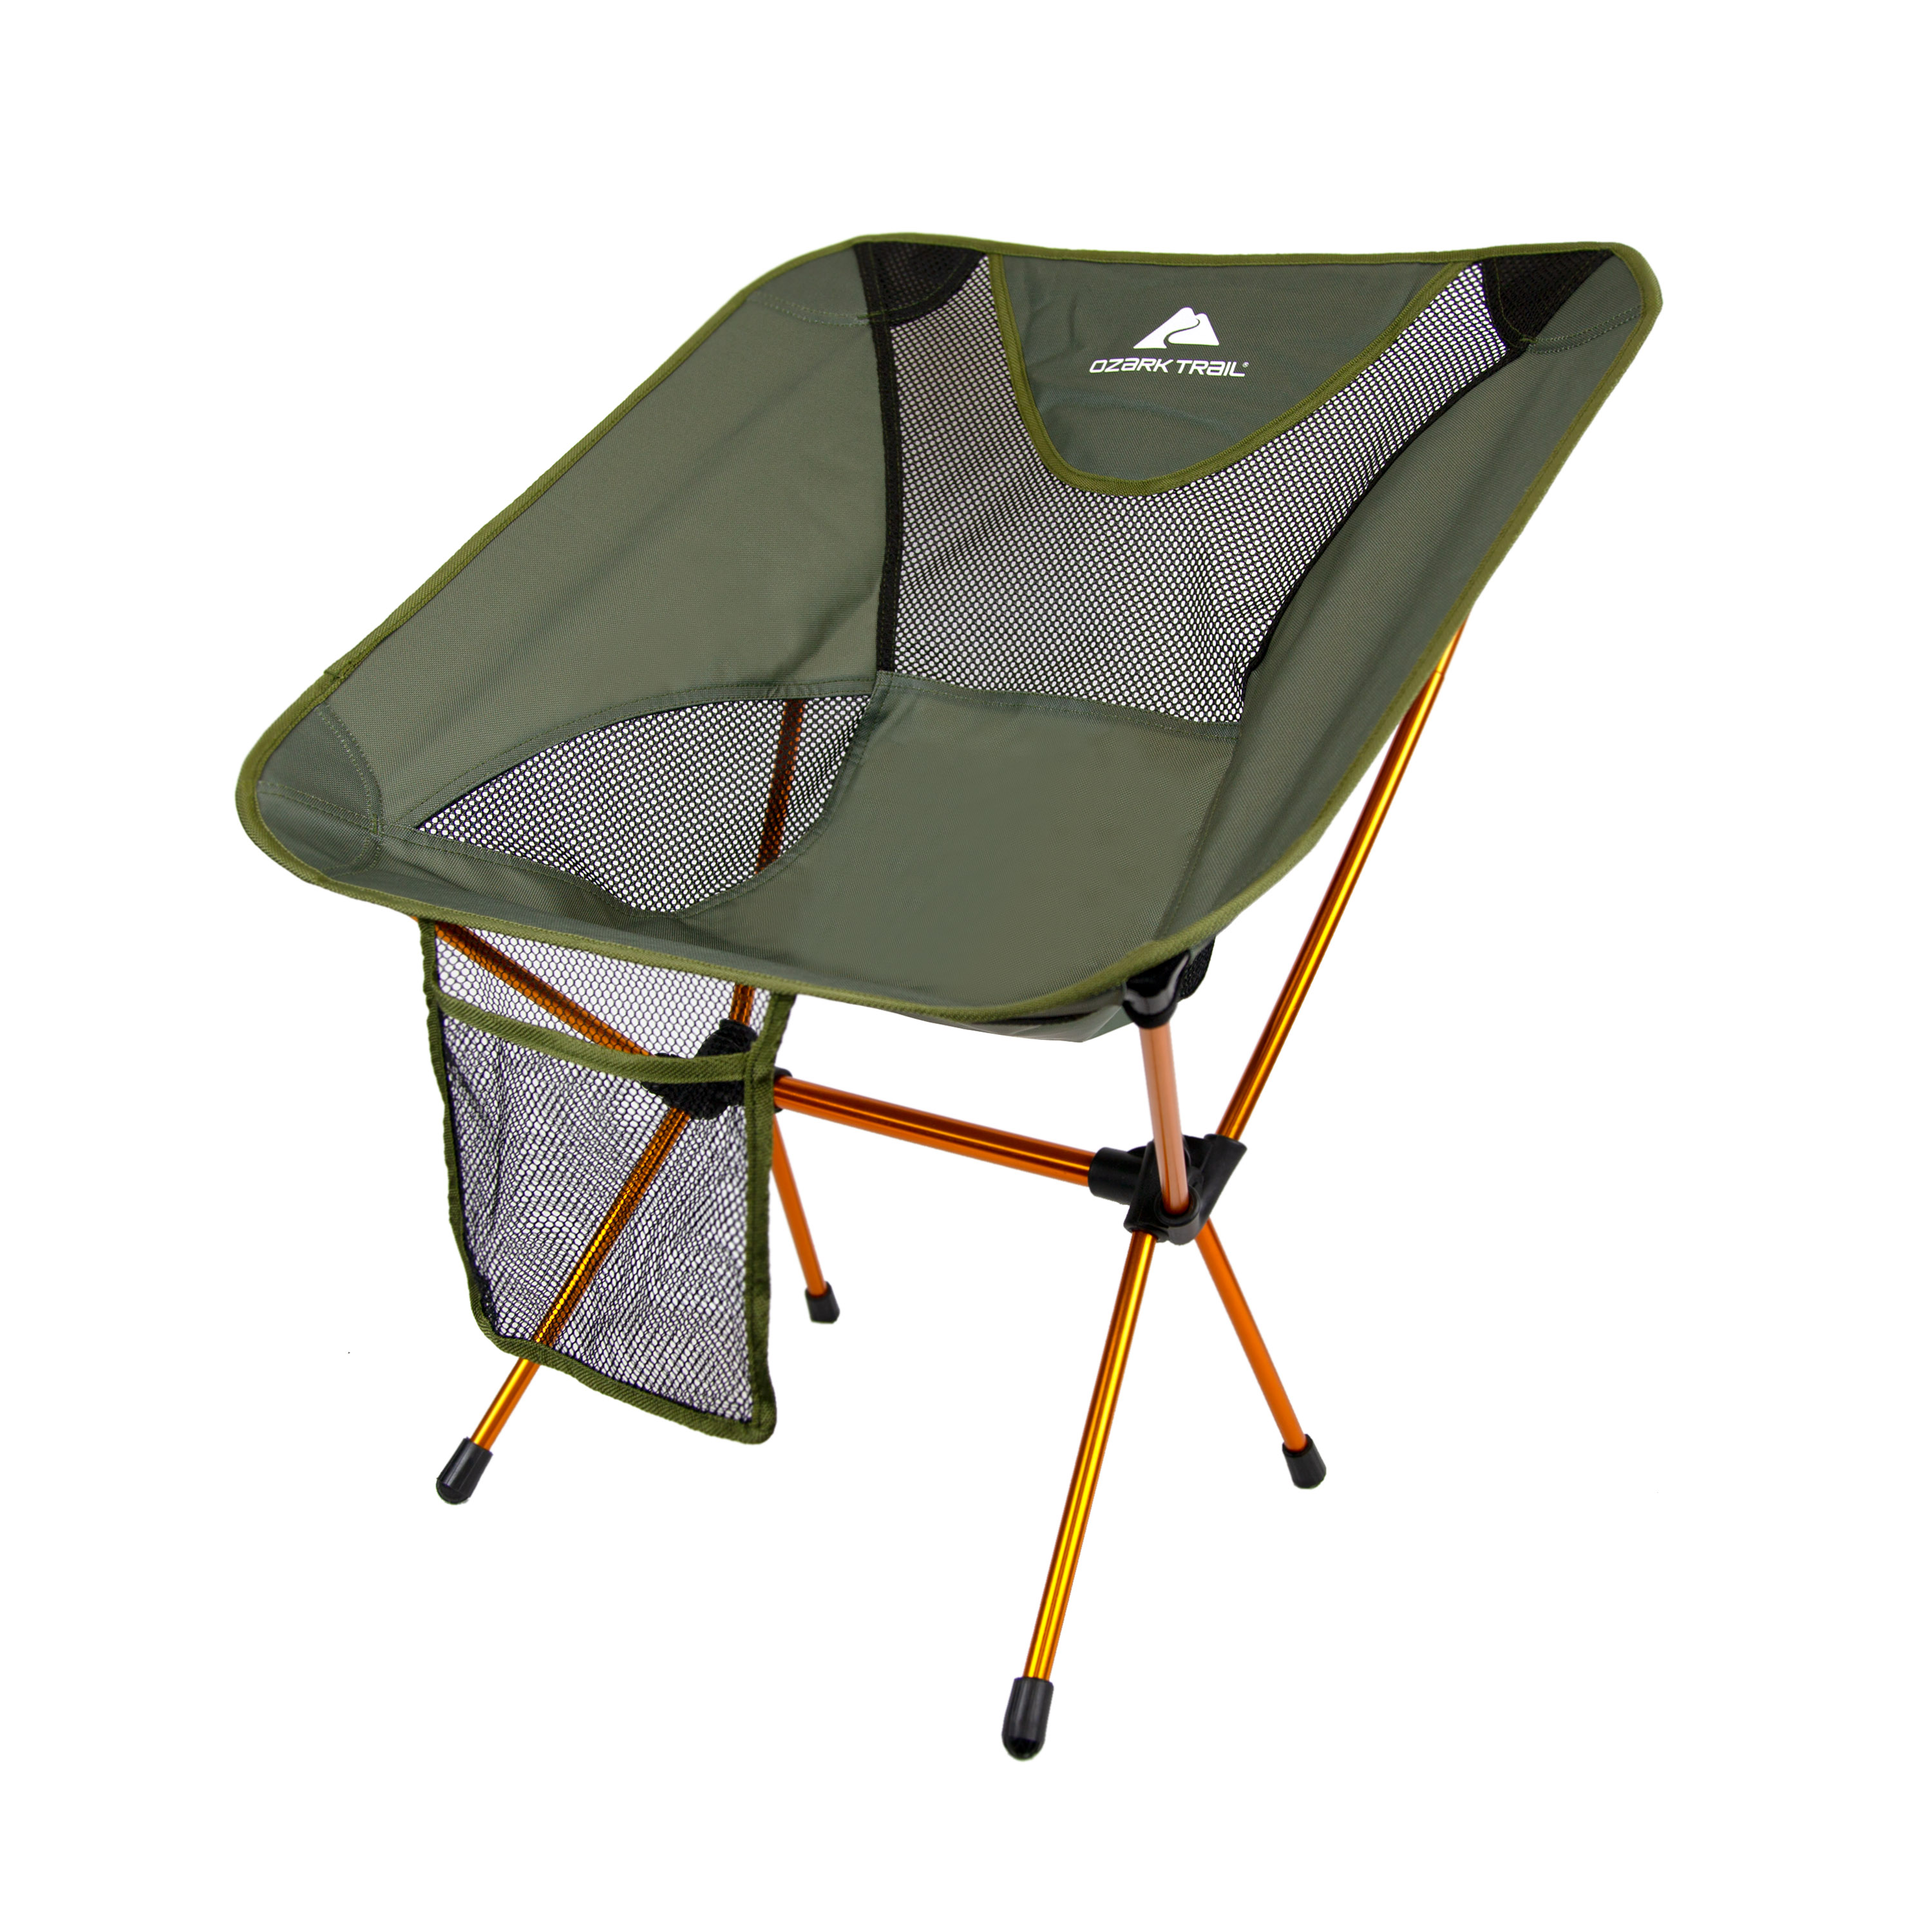 Ozark Trail Himont Compact Camp Lite Chair